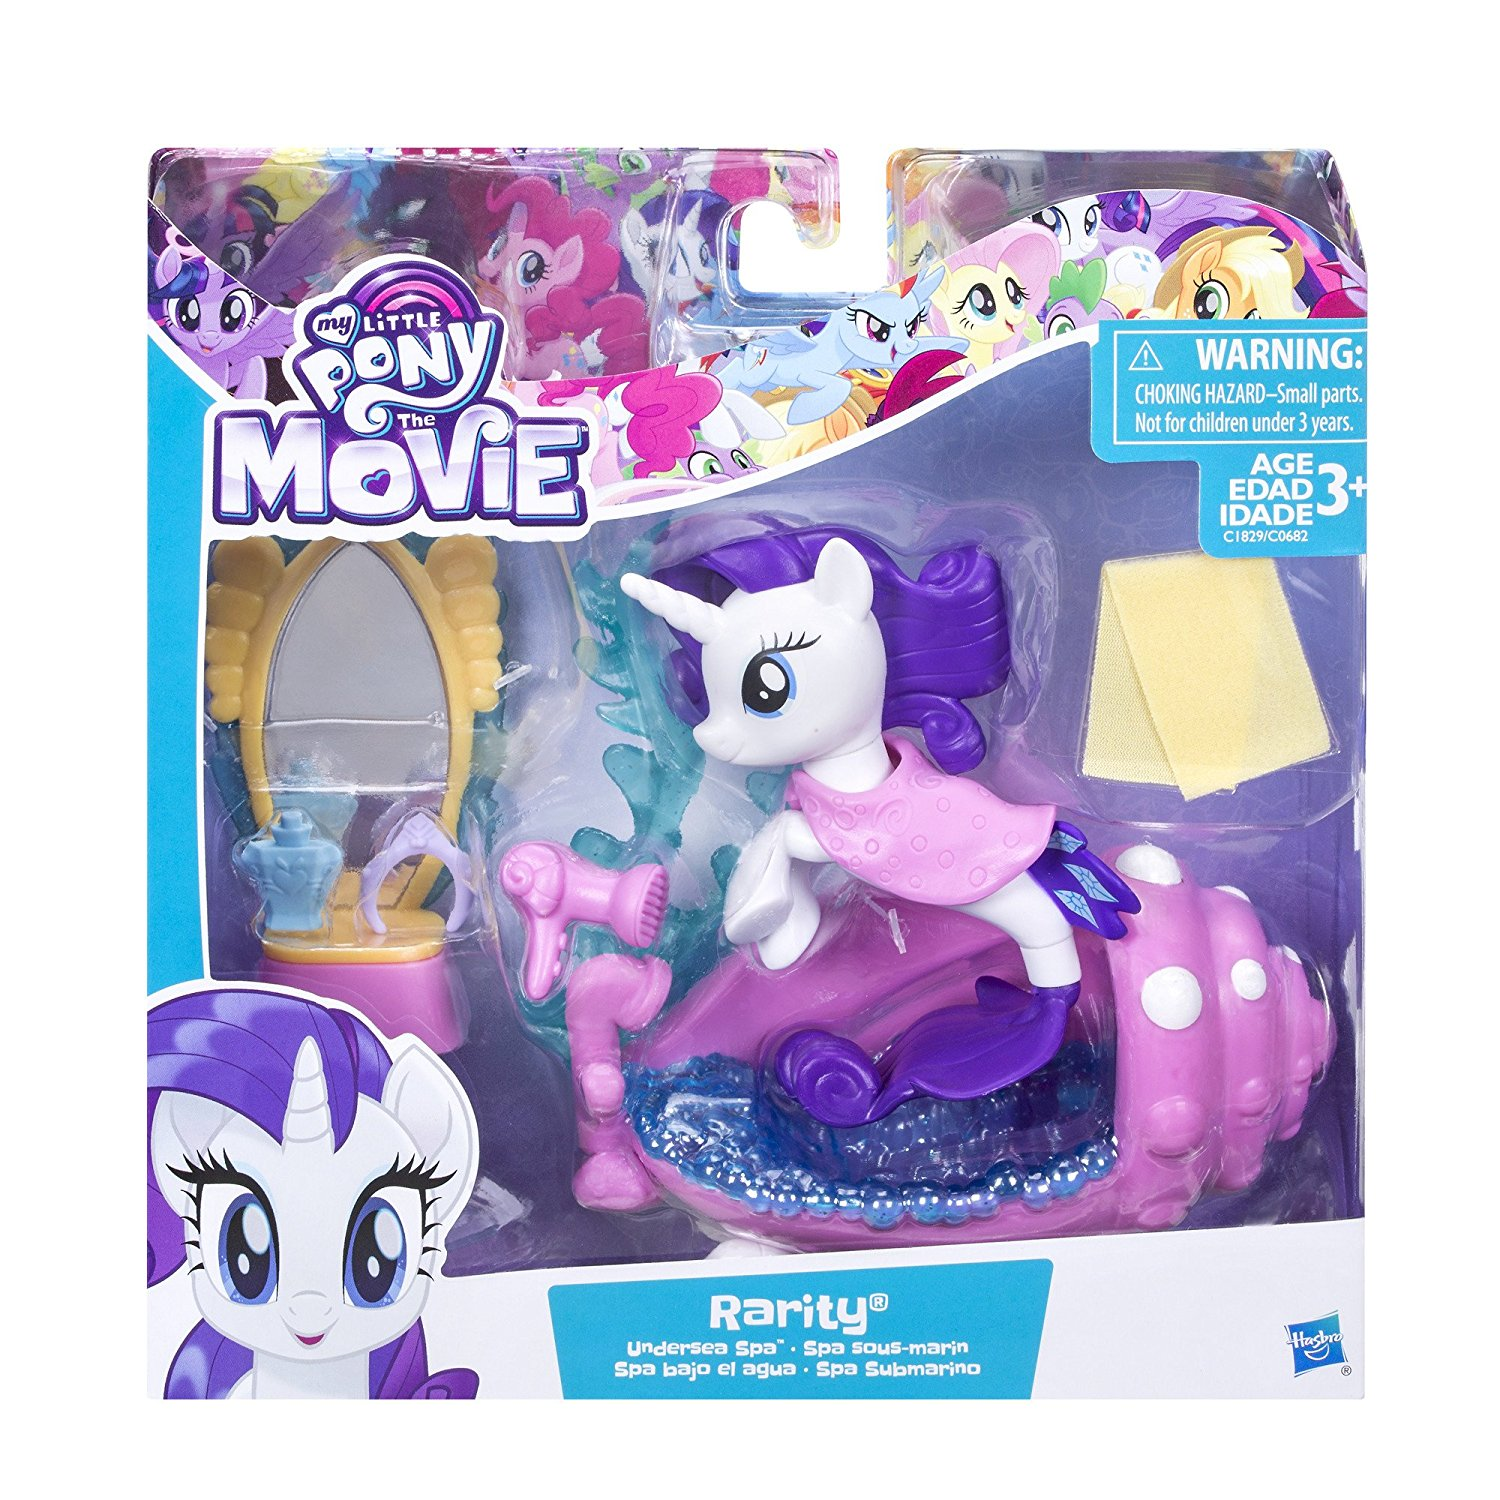 New Mlp The Movie Brushables On Amazon Fashion Styles Mlp Merch